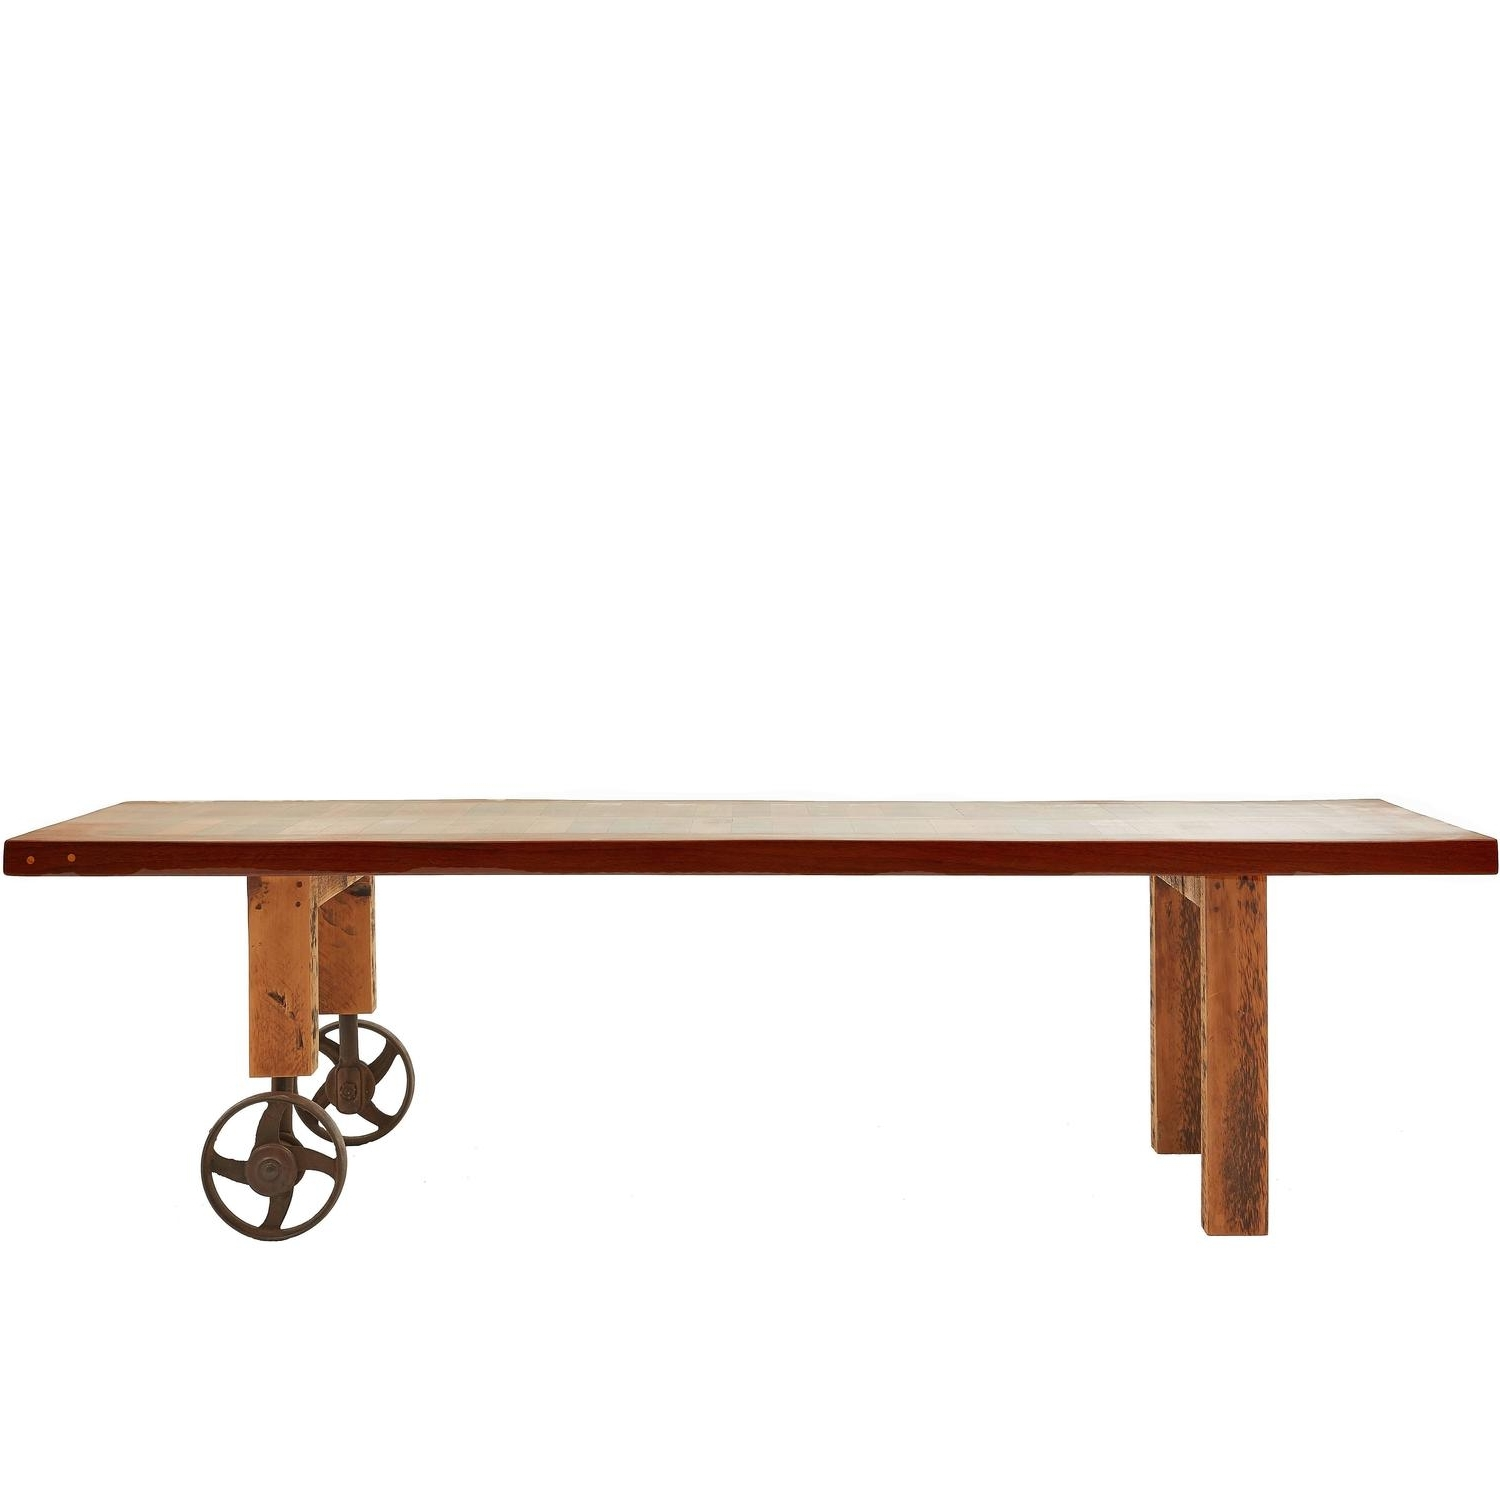 American Craftsman Tables – 132 For Sale At 1Stdibs Inside Well Known Craftsman Cocktail Tables (Gallery 20 of 20)